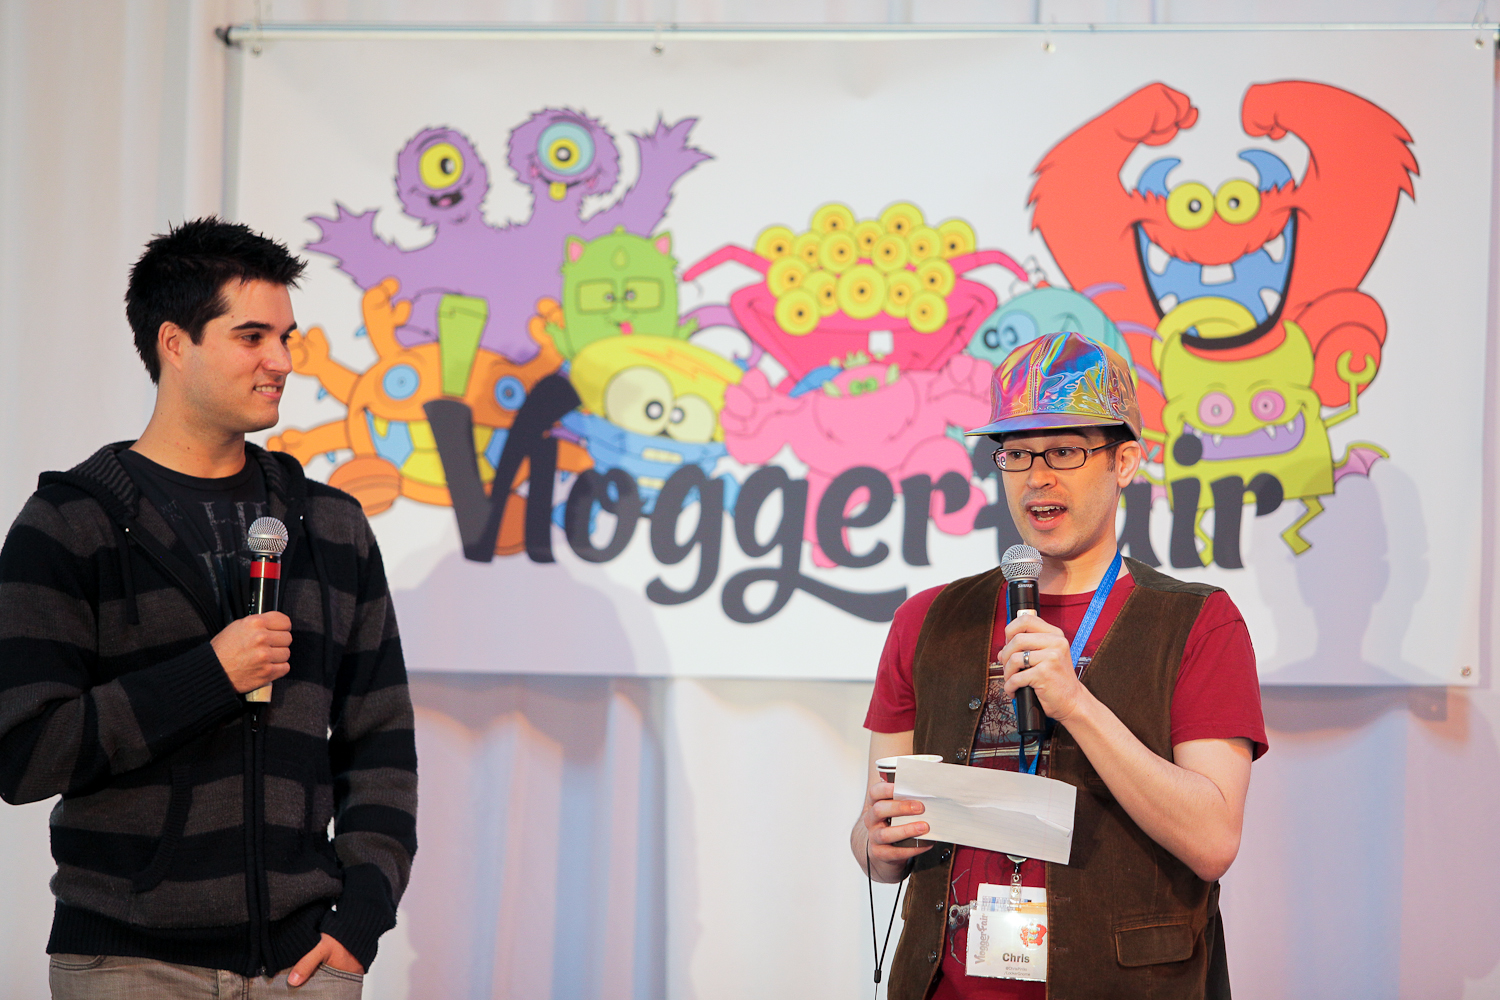 Chris Pirillo presents at the first ever Vlogger Fair in Seattle Saturday June 8 at the Port of Seattle Terminal 5.